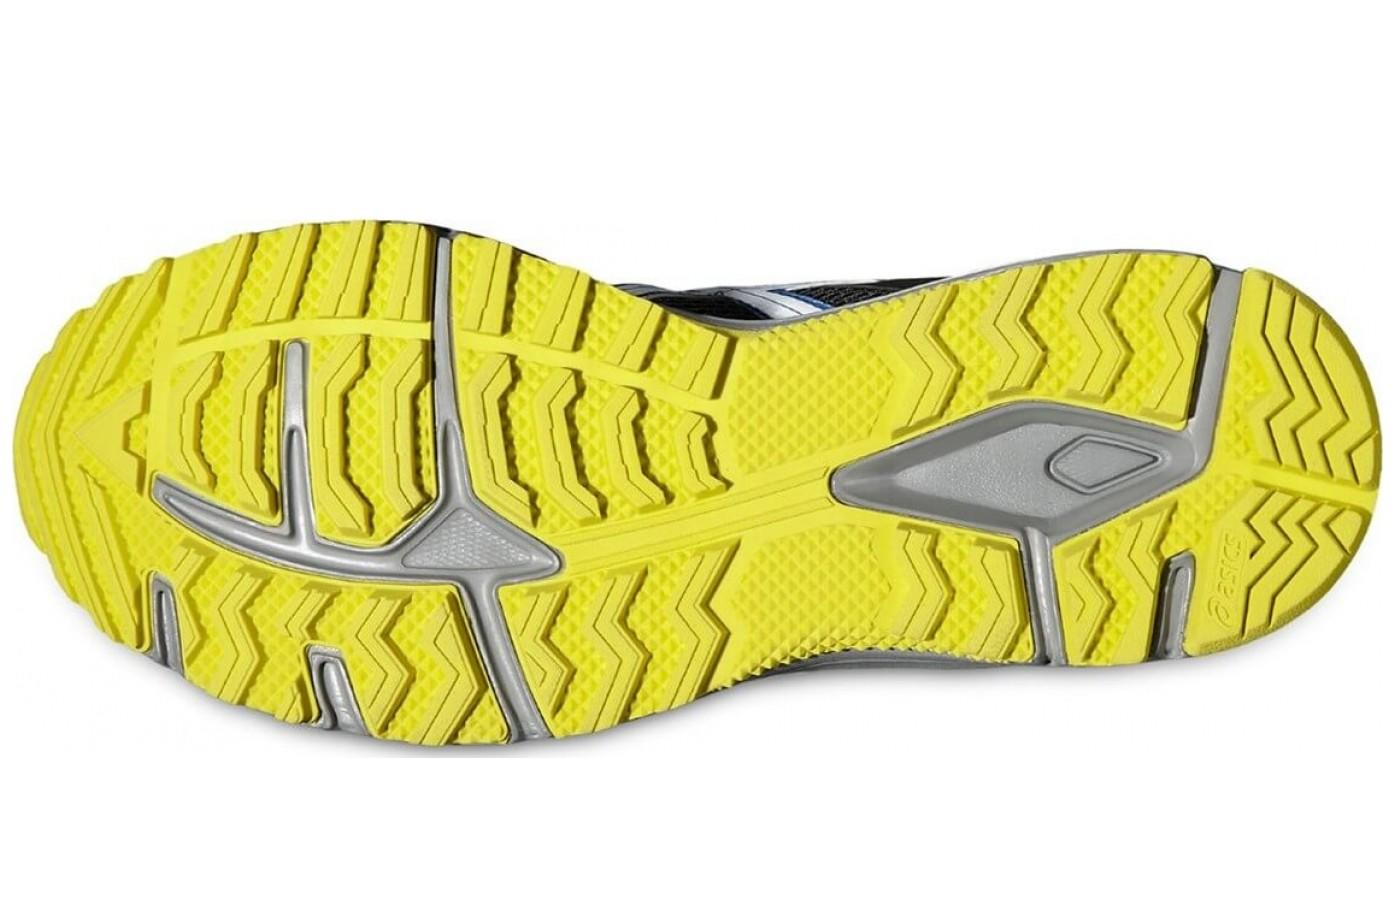 the Asics Gel Tambora 5 has a Trail Specific Outsole with reversed lugs for better traction